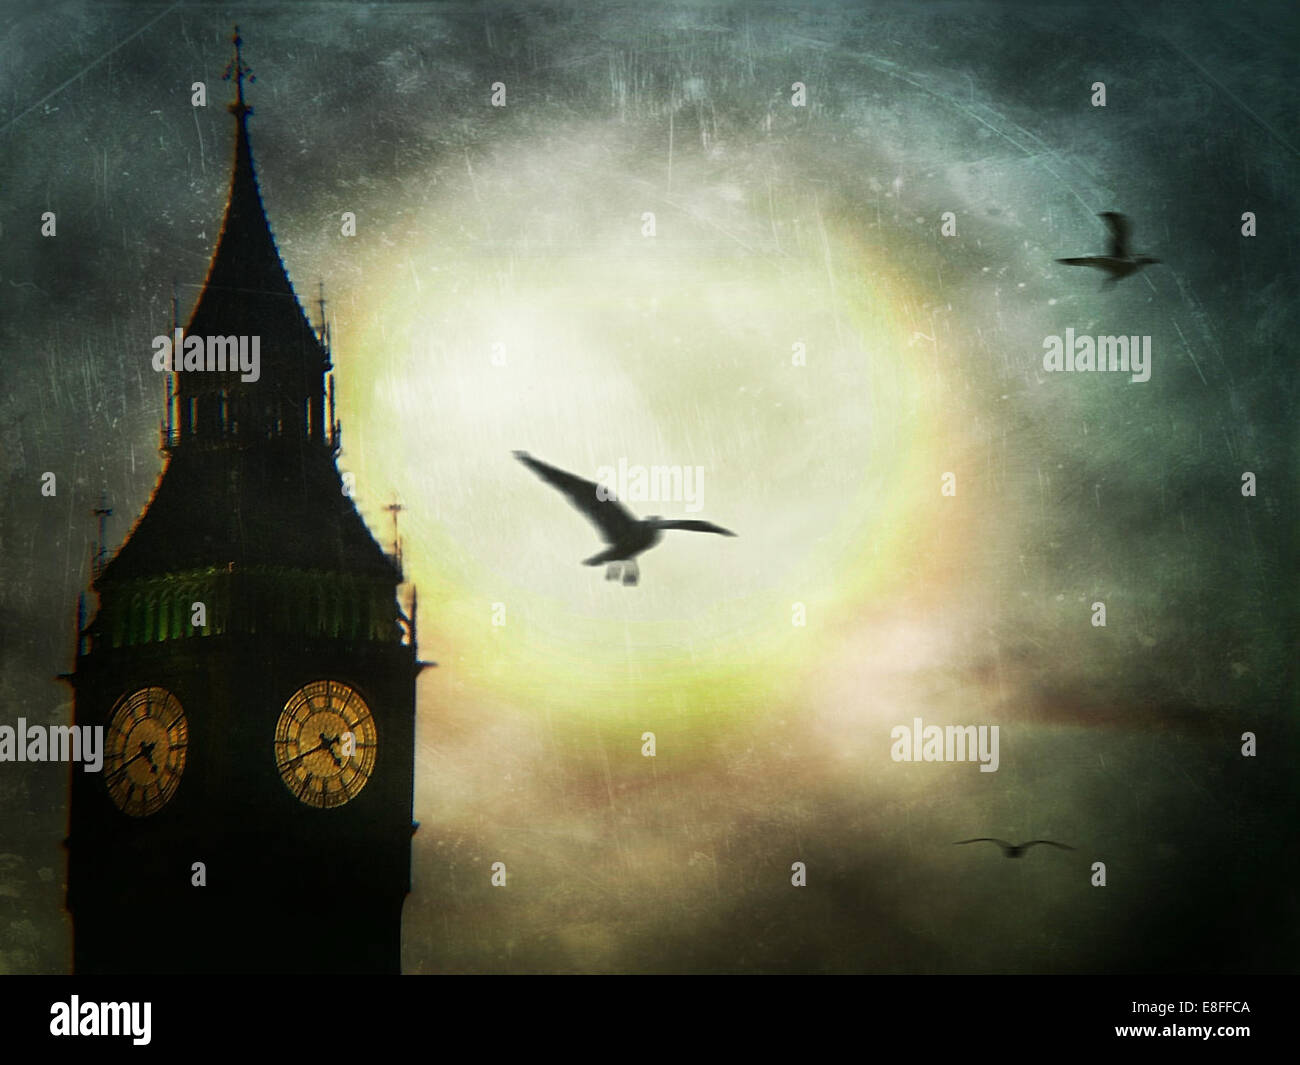 Vögel fliegen vorbei an Big Ben, London, England, UK Stockbild